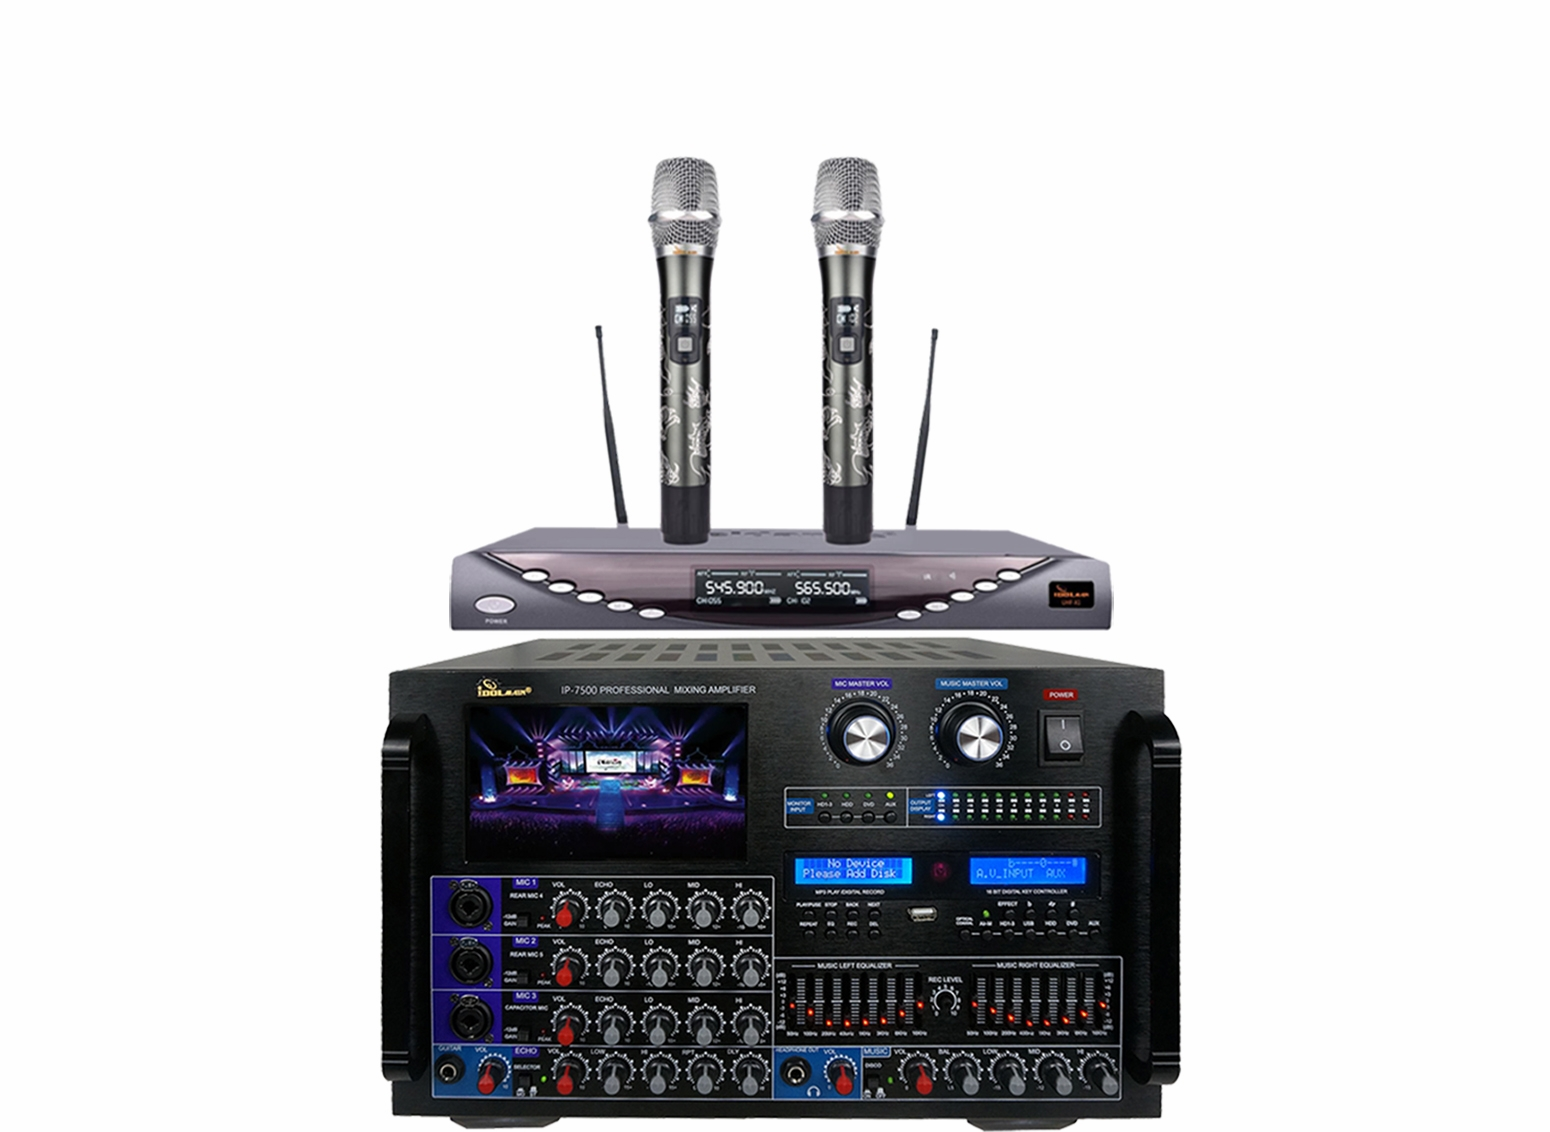 "<font color="" blue""> PACKAGE 7</font> --IP-7500 Mixing Amplifier & UHF-X1D Wireless Microphone"